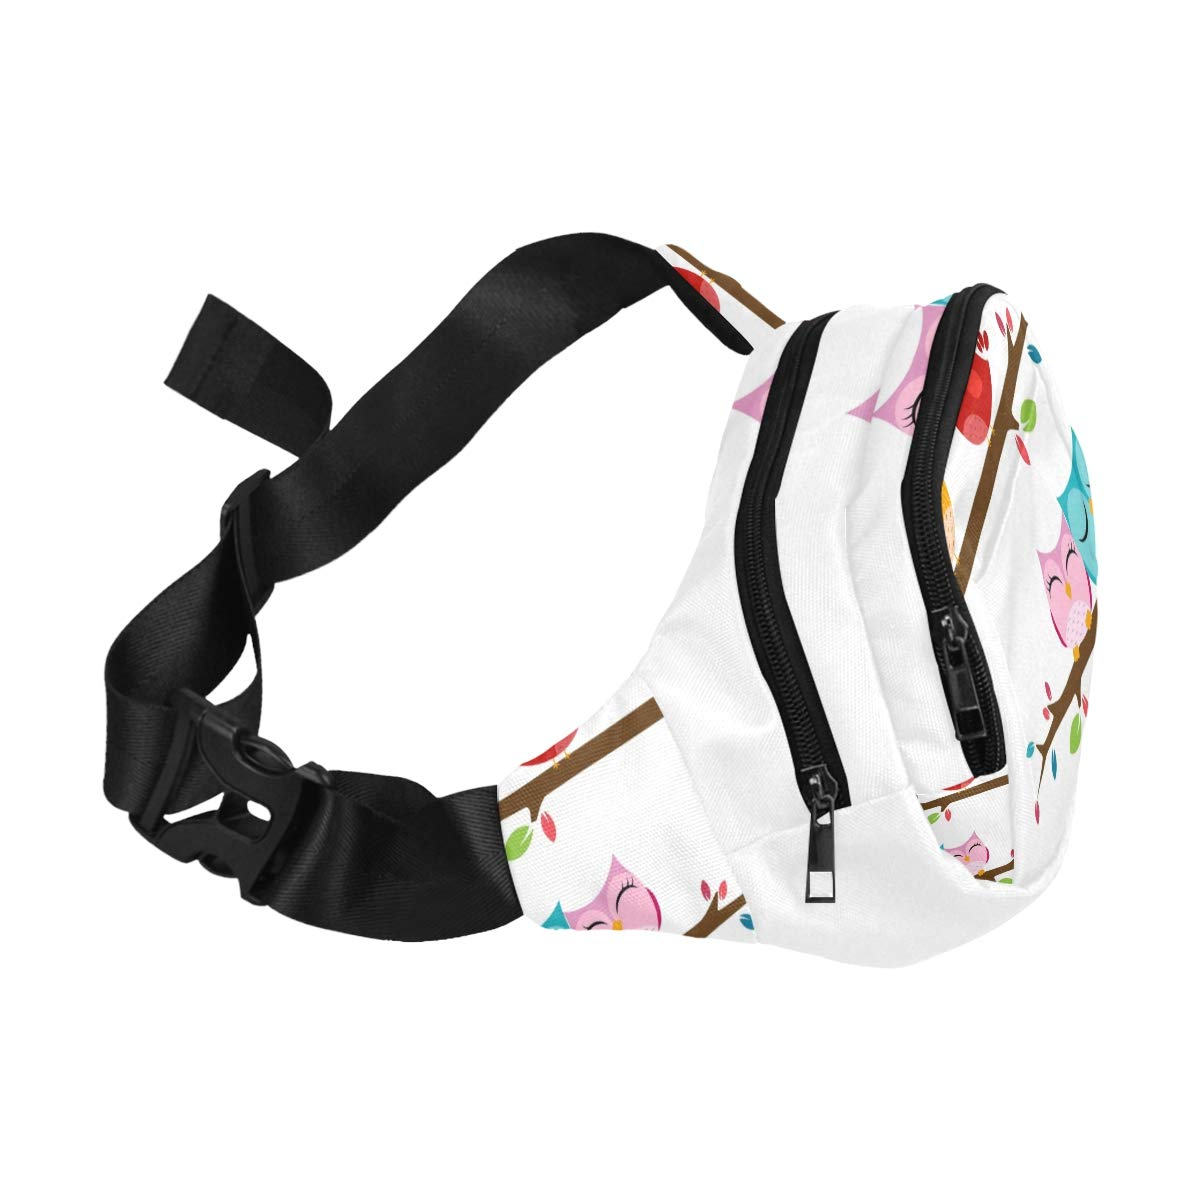 Tree With Musical Notes And Birds Fenny Packs Waist Bags Adjustable Belt Waterproof Nylon Travel Running Sport Vacation Party For Men Women Boys Girls Kids